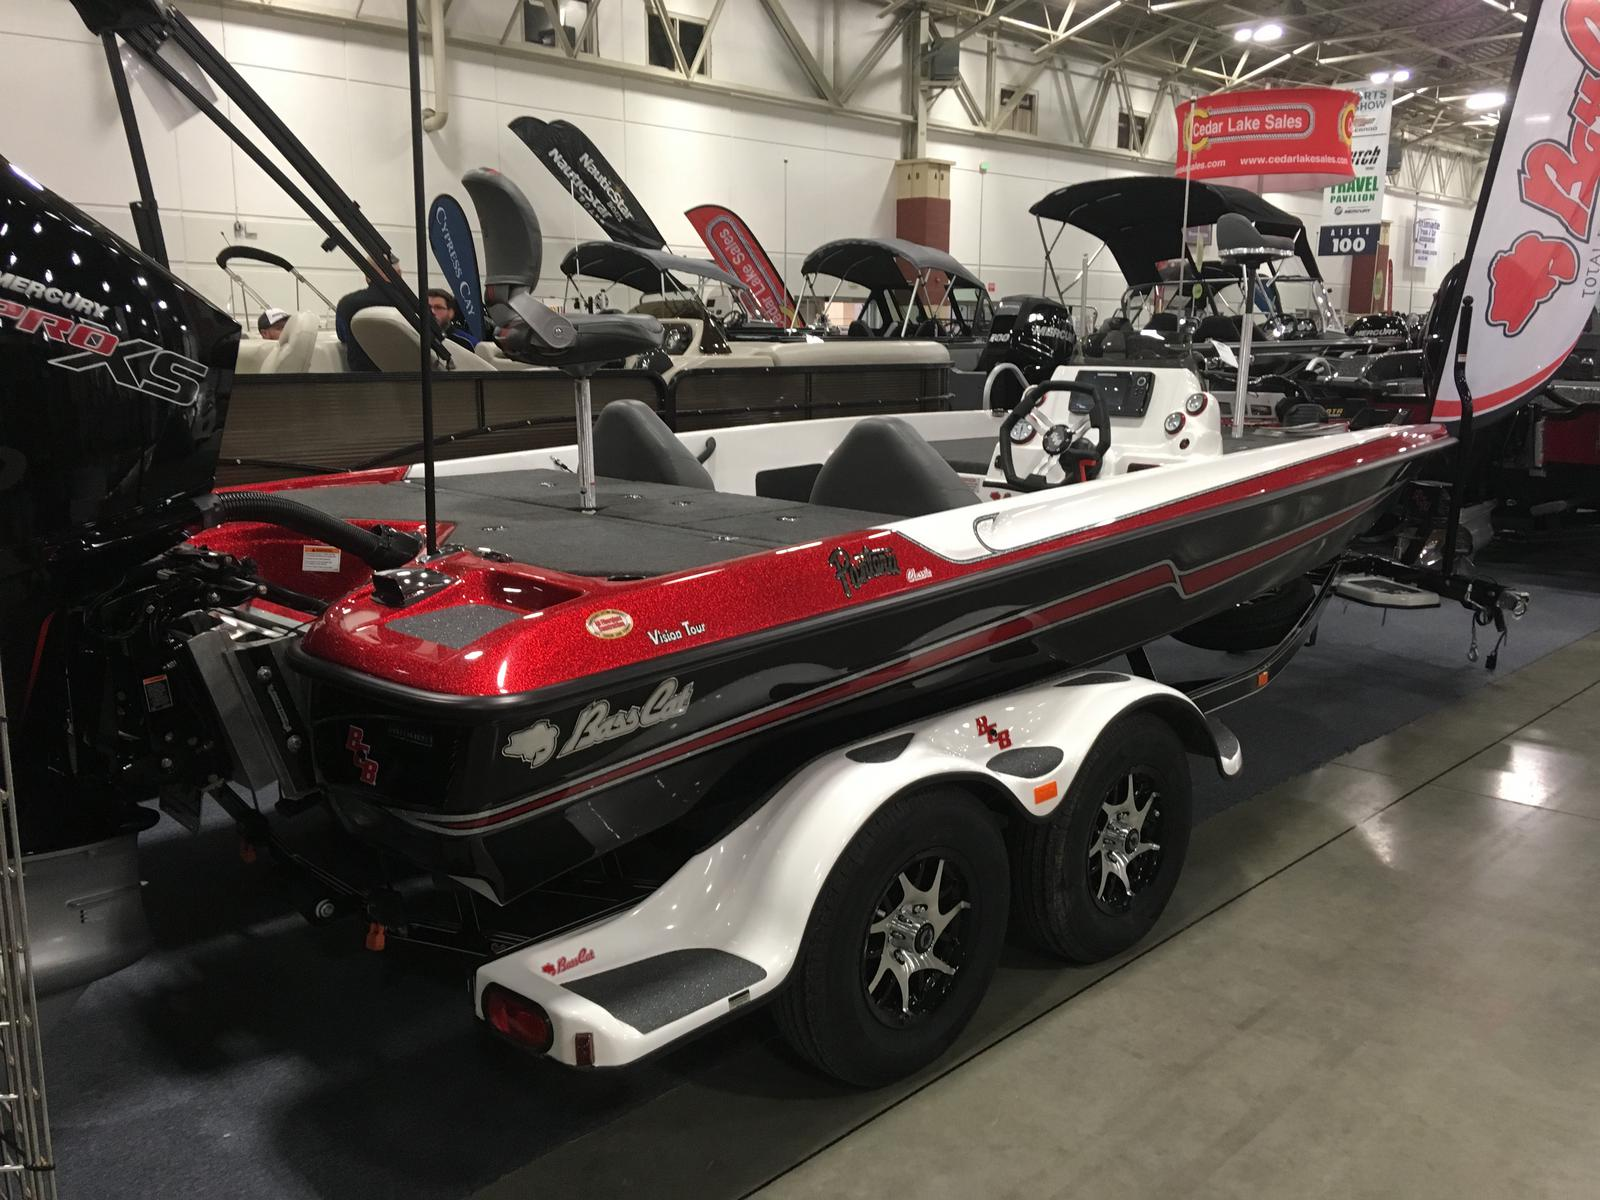 Inventory from Bass Cat Boats and Stingray Boats Cedar Lake